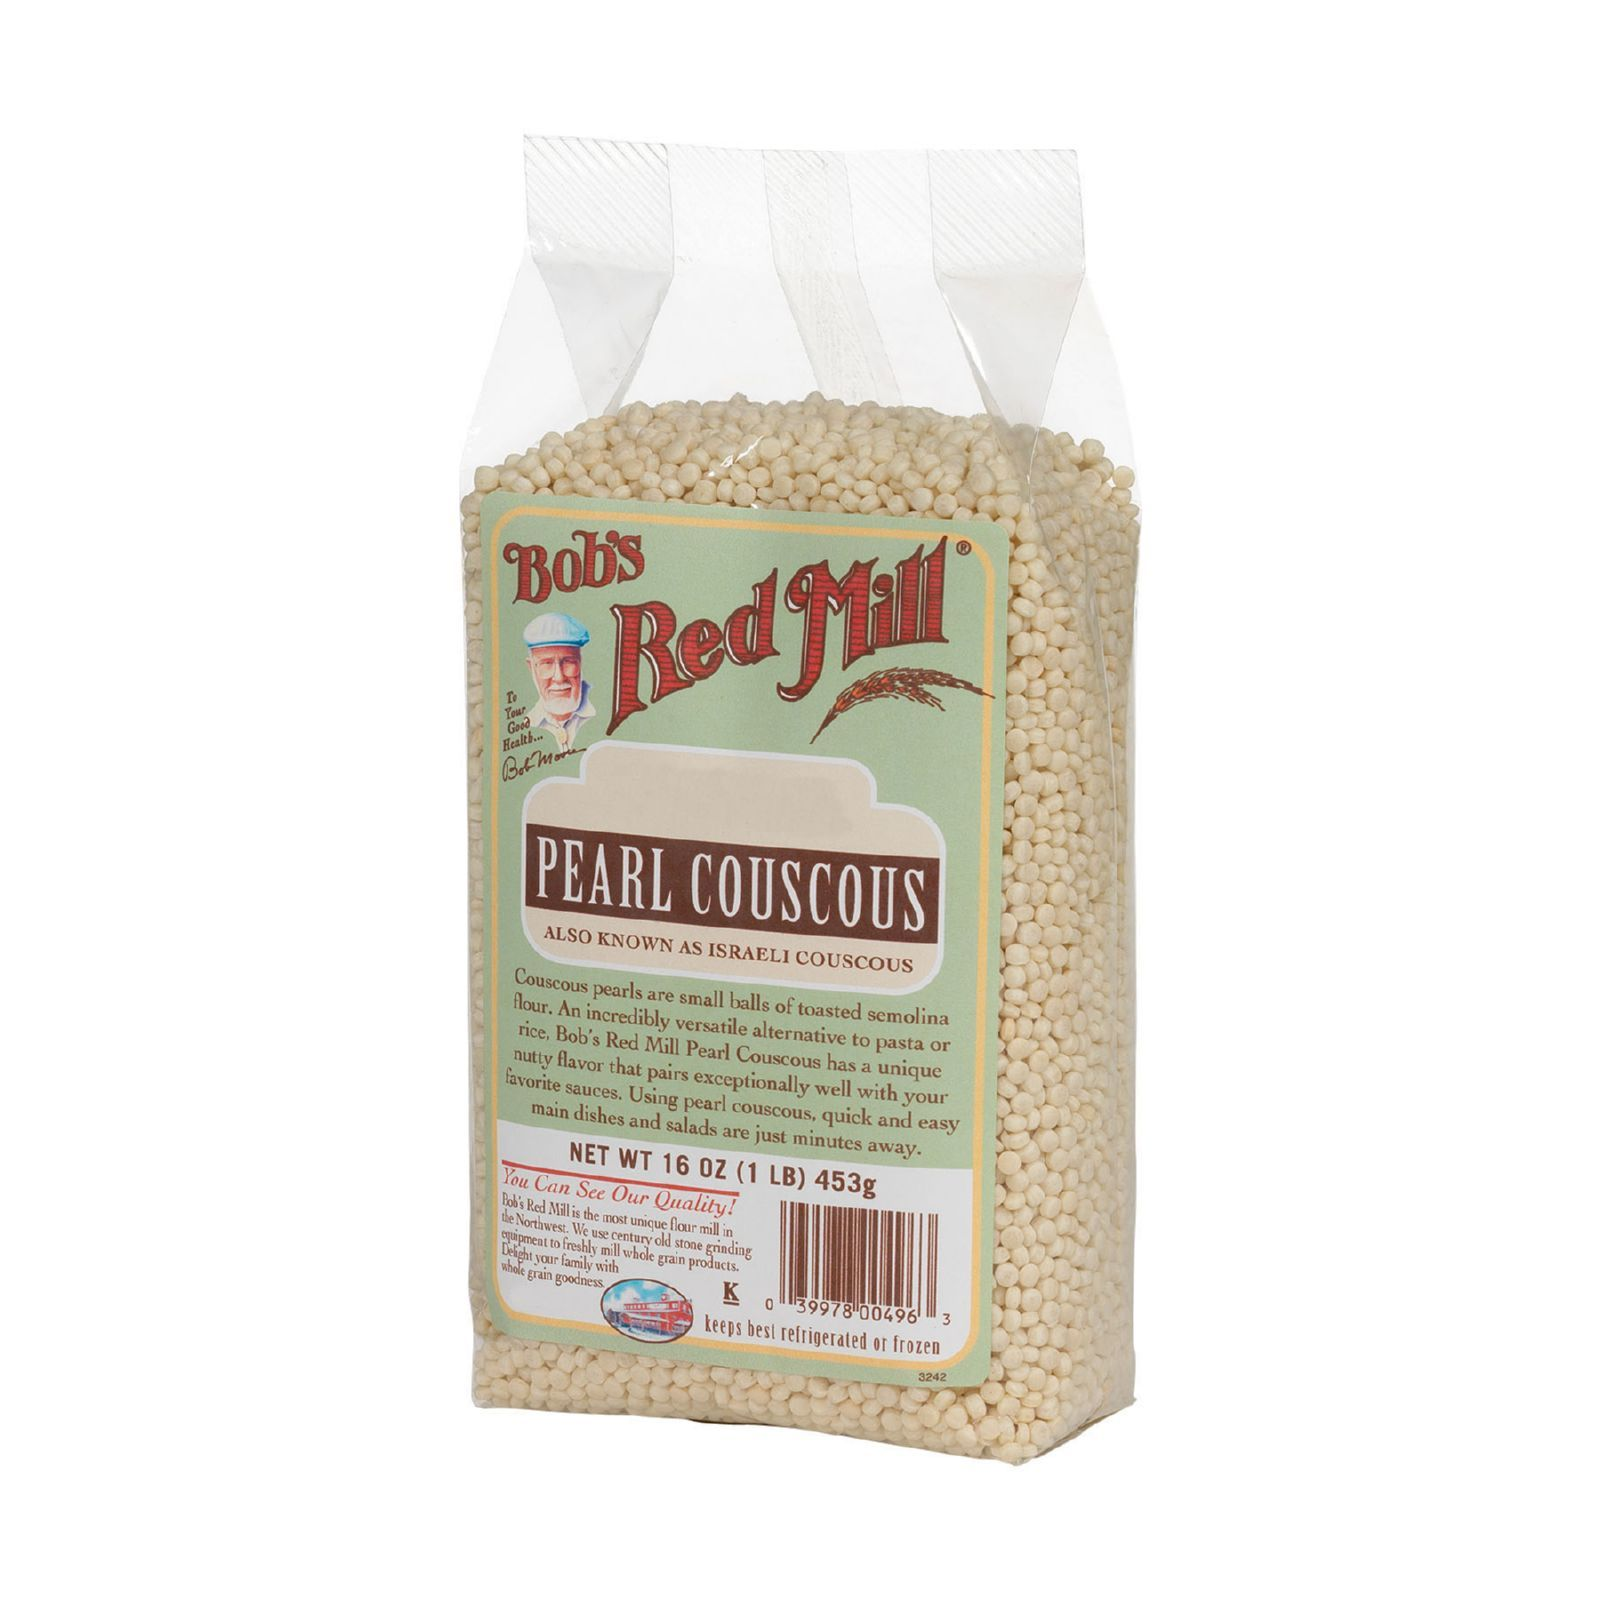 Bob's Red Mill Traditional Pearl Couscous - 16 oz - Case of 4